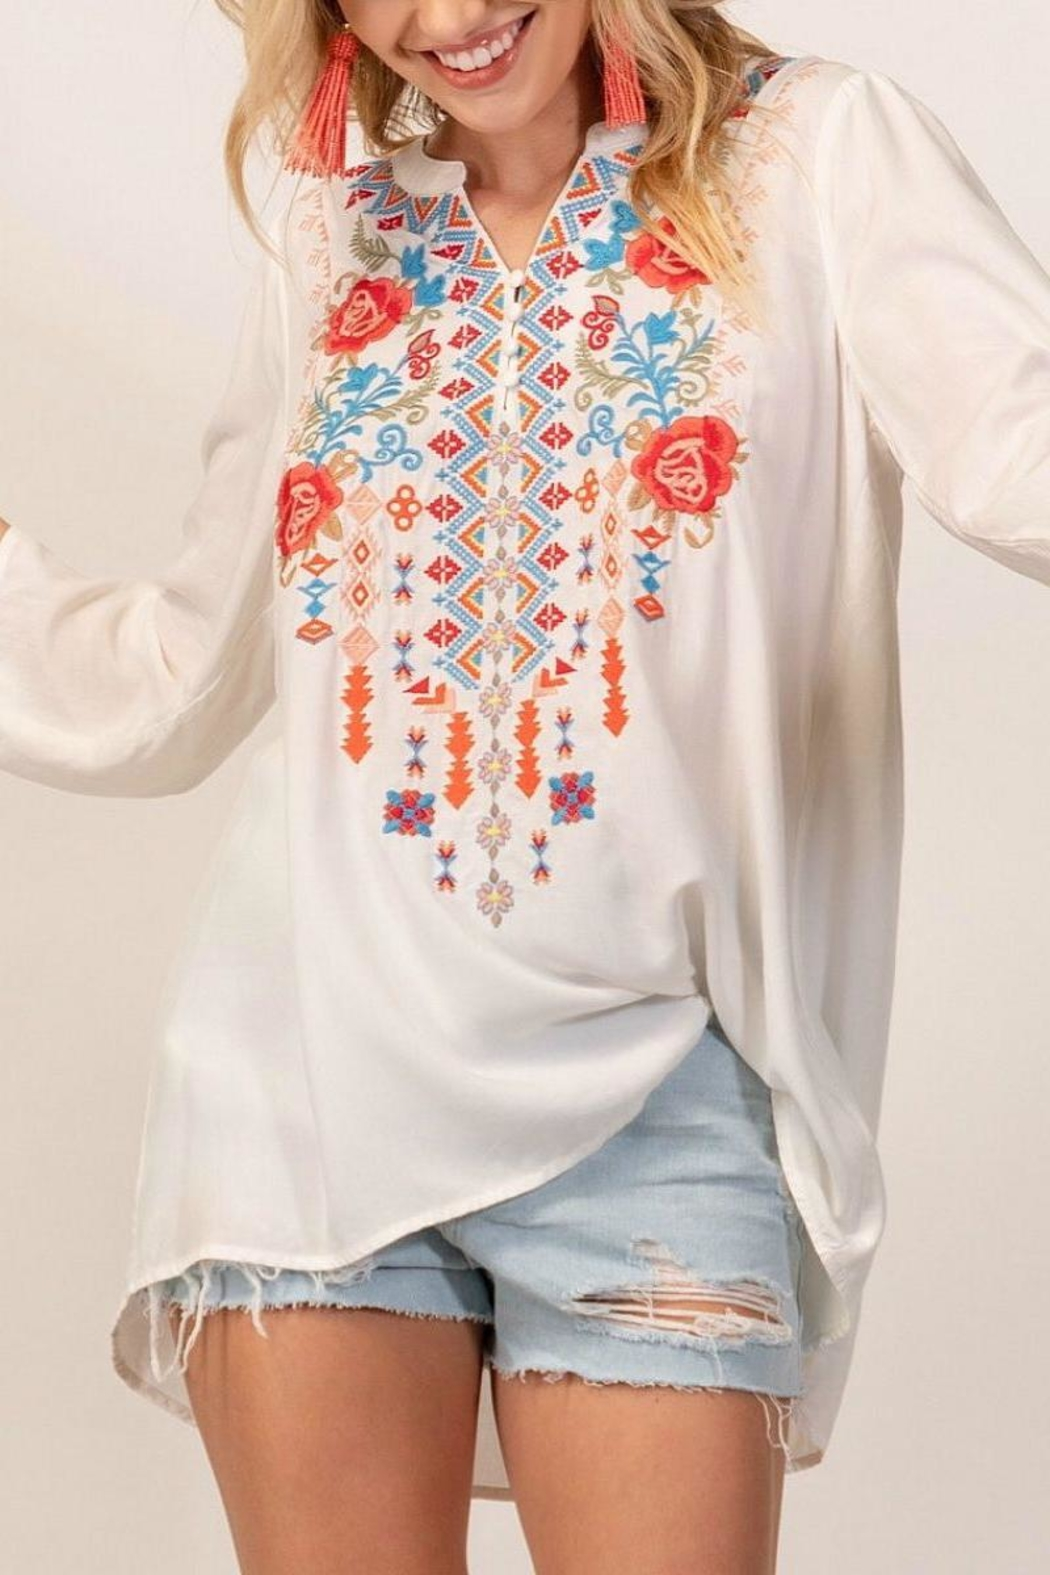 Andree by Unit White Embroidery Top - Main Image